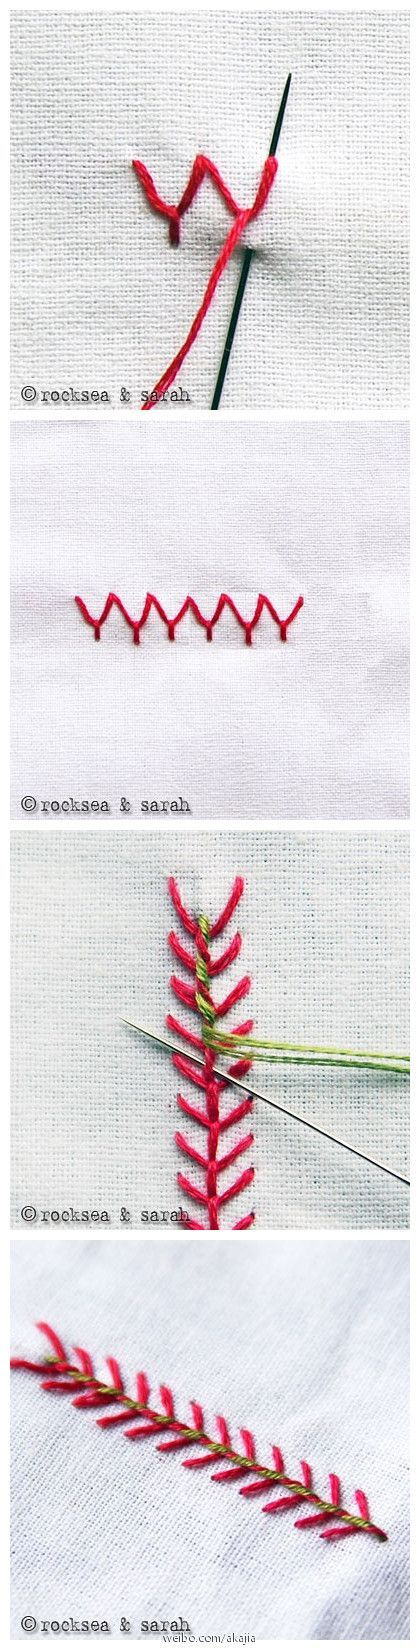 Embroidery Stitches - Tutorial